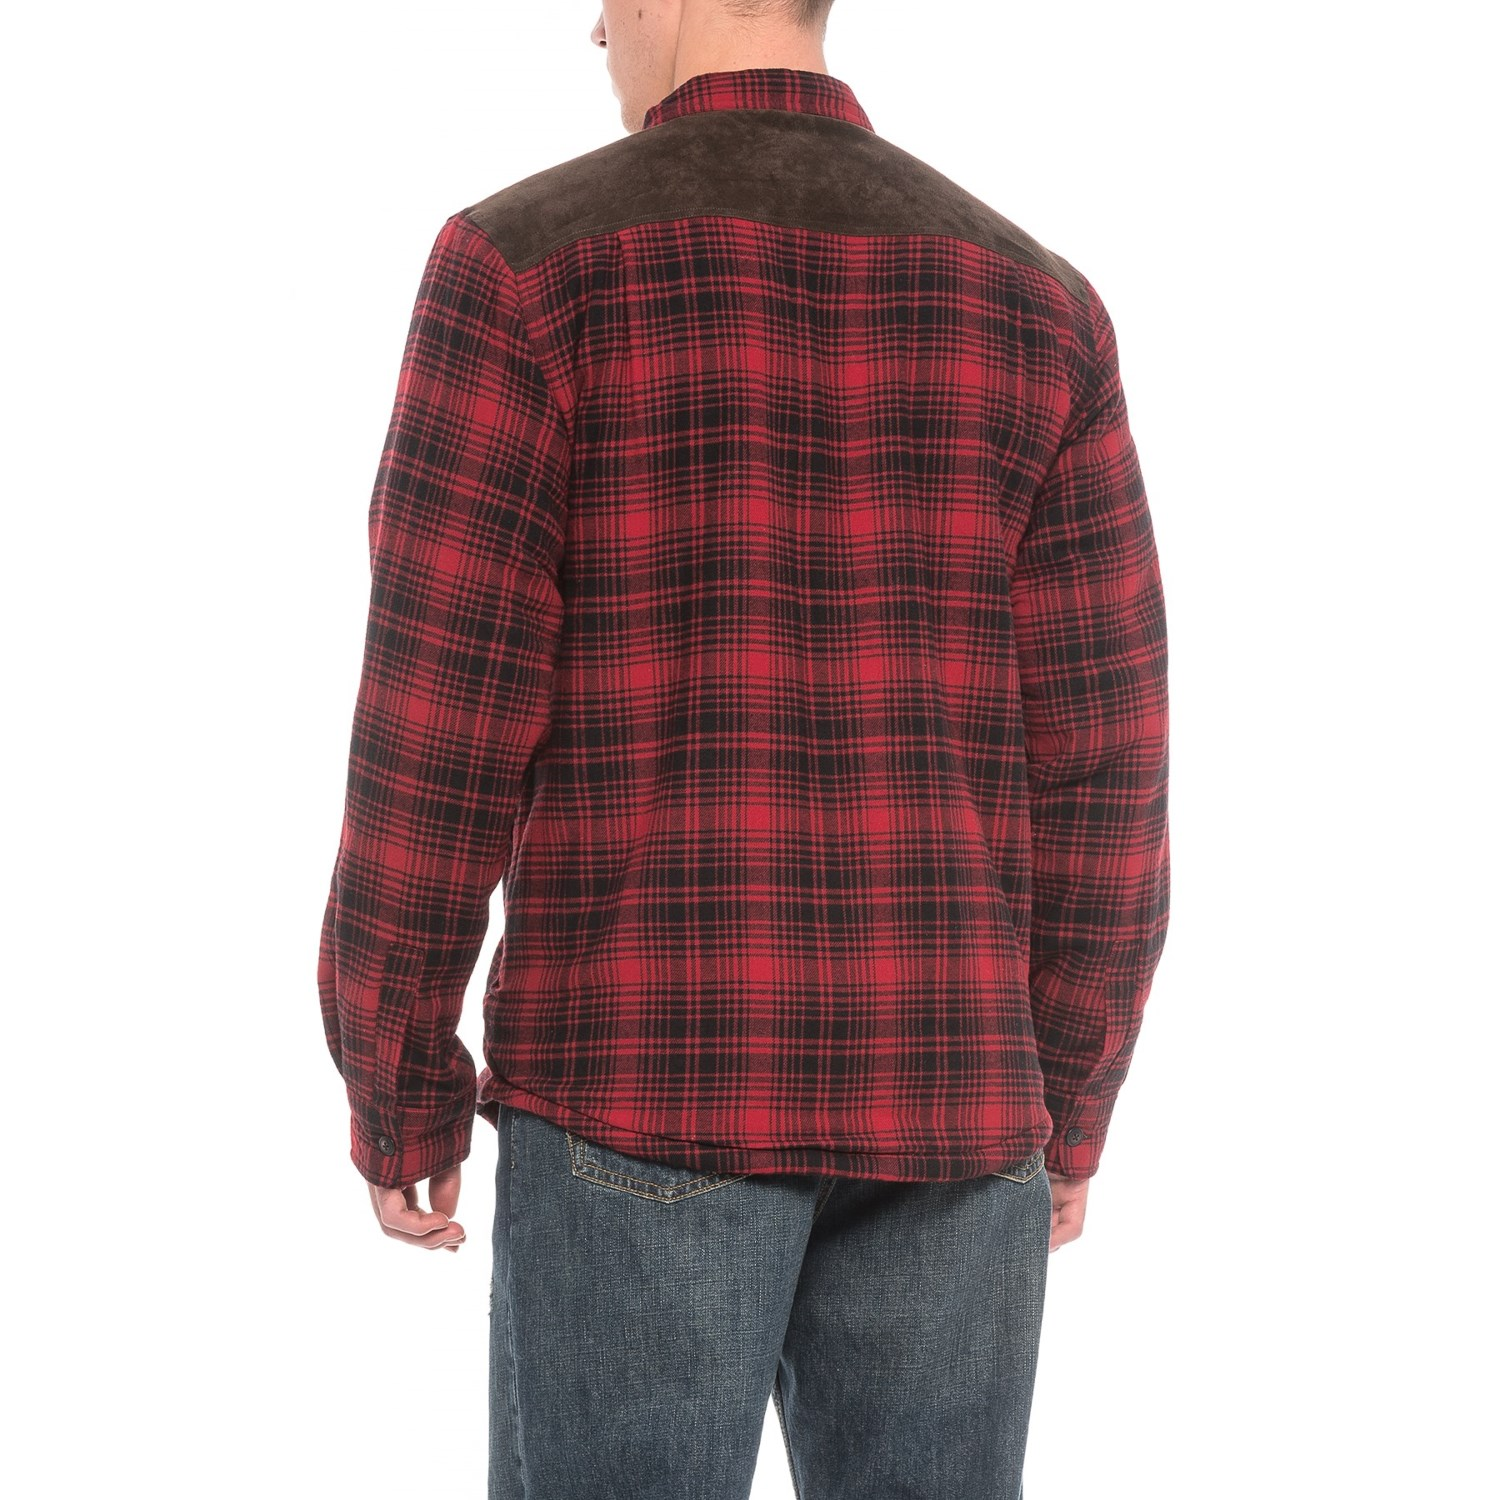 Shop men's flannel shirts at Eddie Bauer. % Satisfaction guaranteed. Since